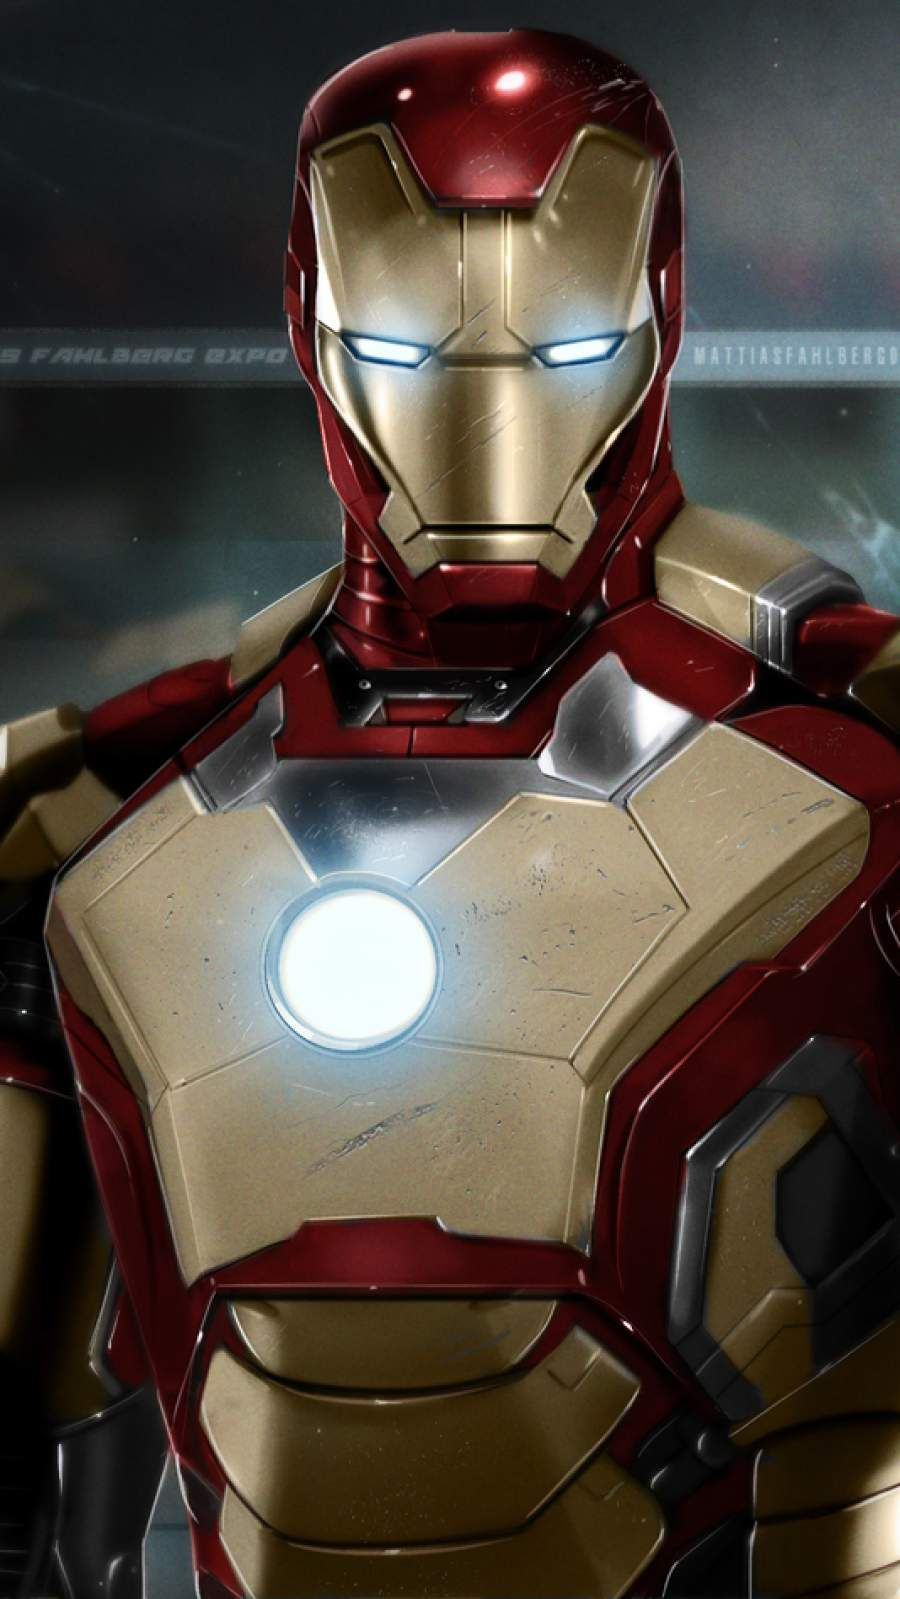 Iphone Wallpapers Wallpapers For Iphone Xs Iphone Xr And Iphone X Iron Man Art Iron Man Iron Man Armor